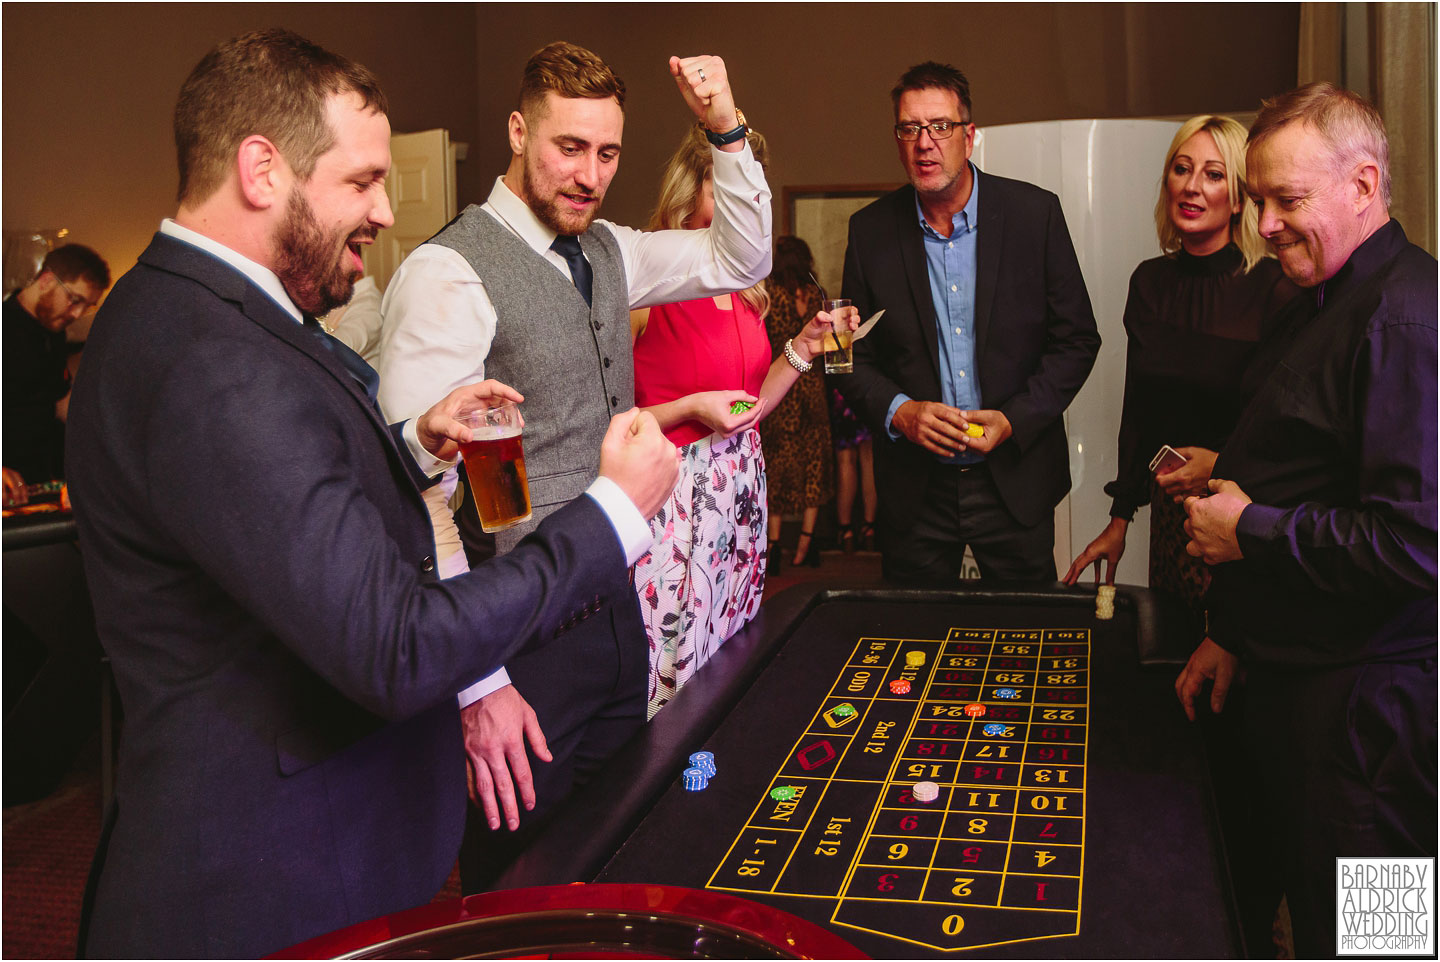 Evening roulette and blackjack tables at Saltmarshe Hall near Goole in East Yorkshire, Wedding photography at Saltmarshe Hall, East Yorkshire Wedding Photographer Barnaby Aldrick